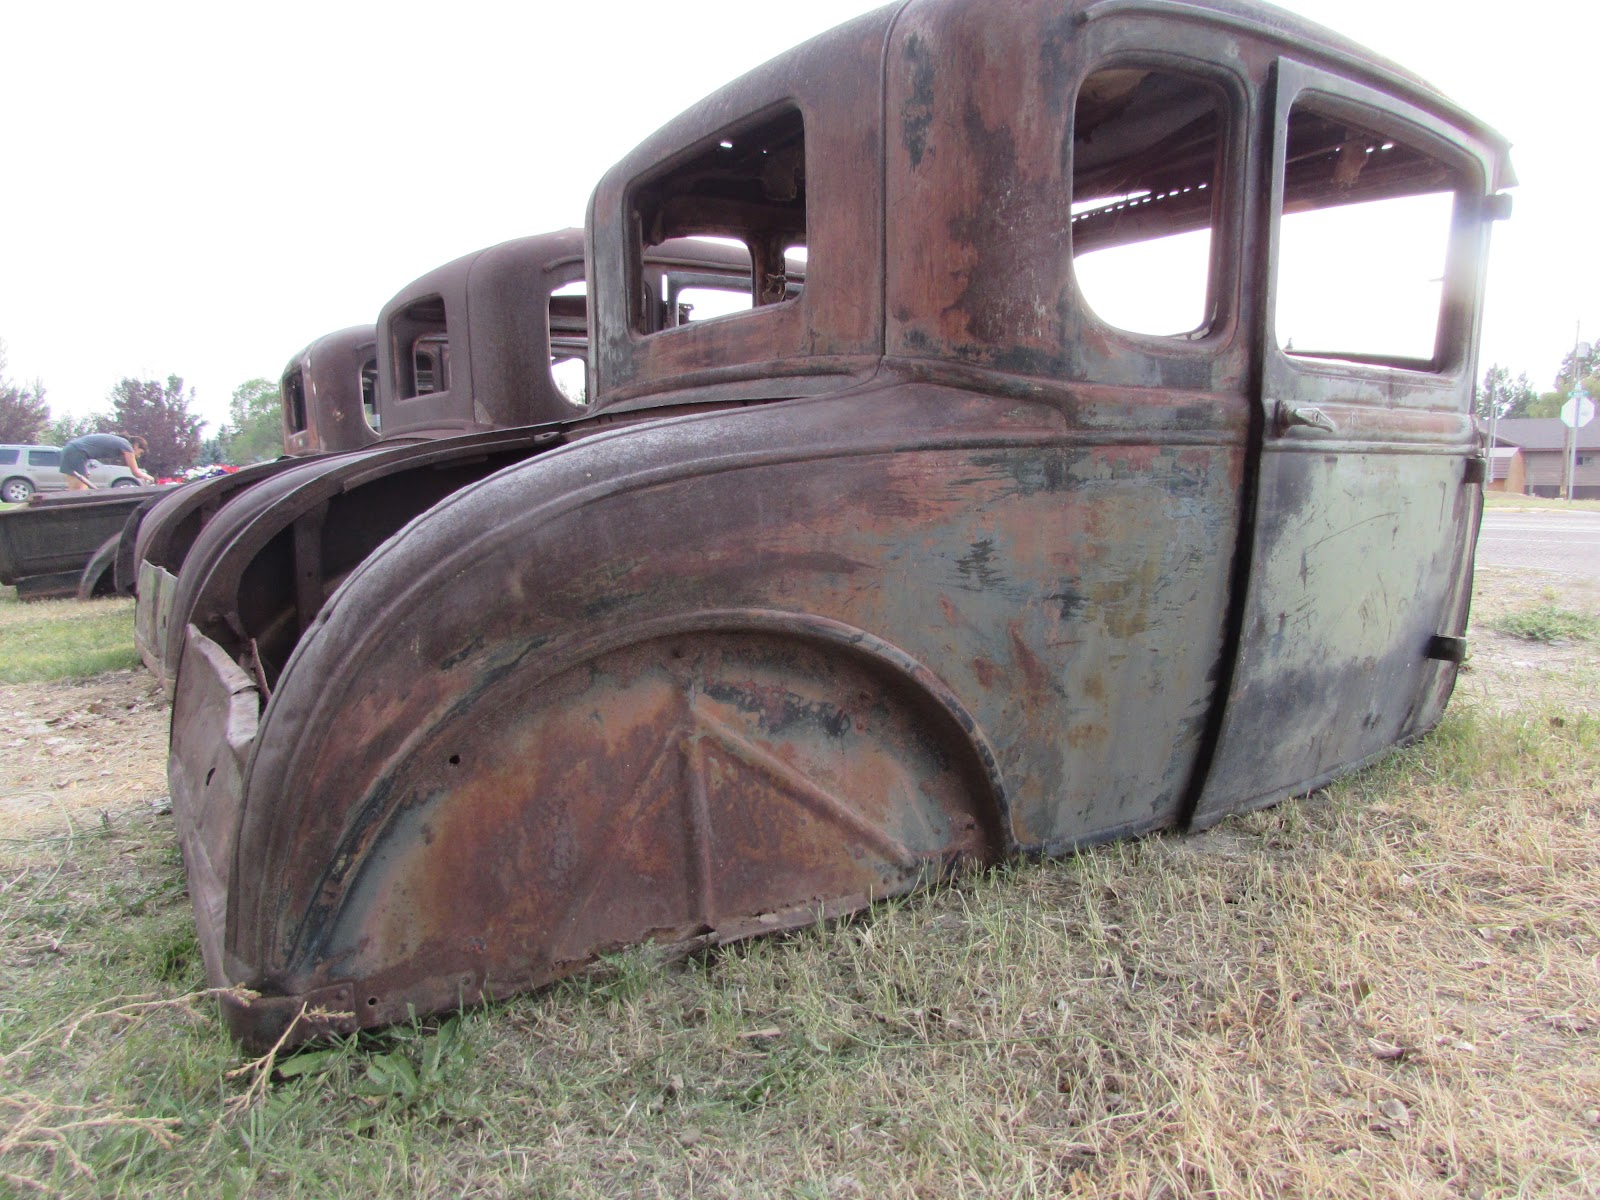 For sale 1930 31 ford coupe body i saved the best for last this coupe is very straight and almost complete it has all garnish moldings except the rear